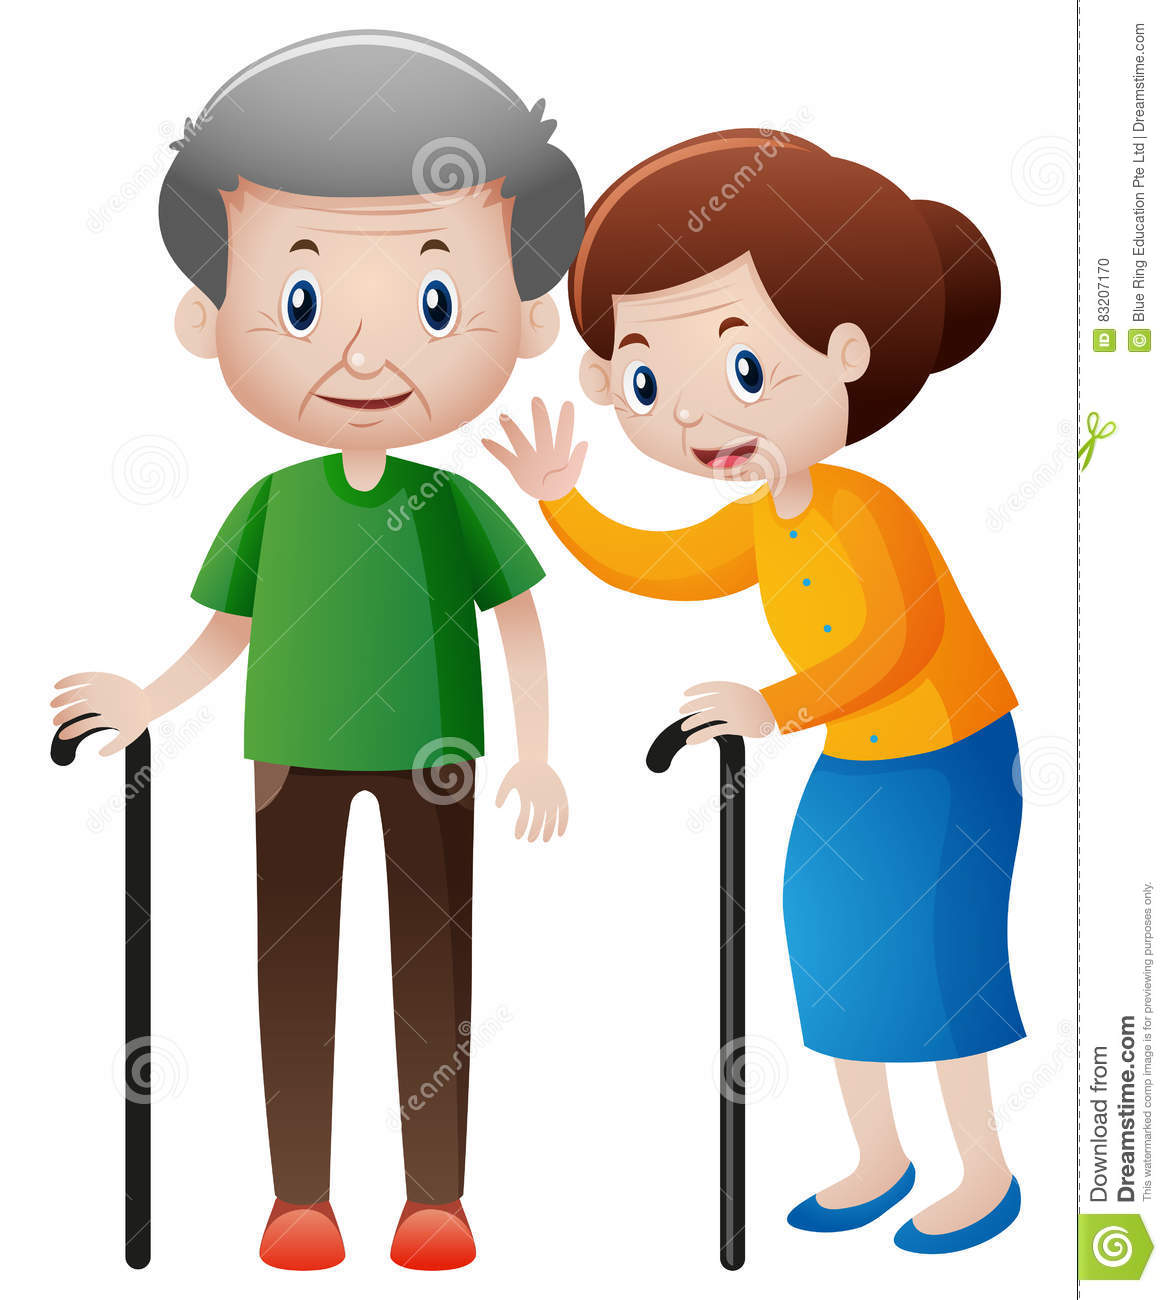 Grandmother and grandfather clipart 9 » Clipart Station.